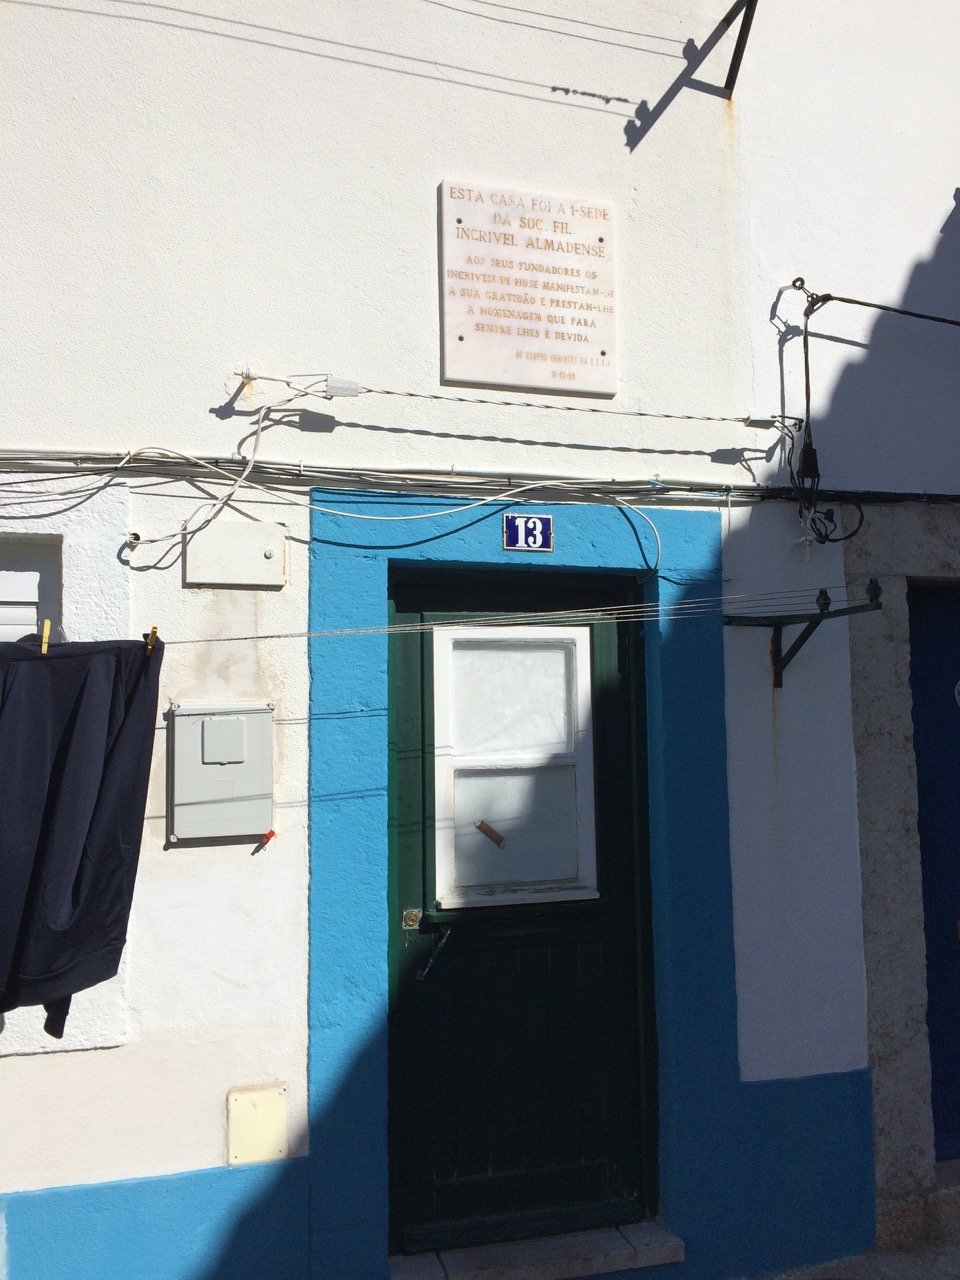 Historical buildings of Cacilhas